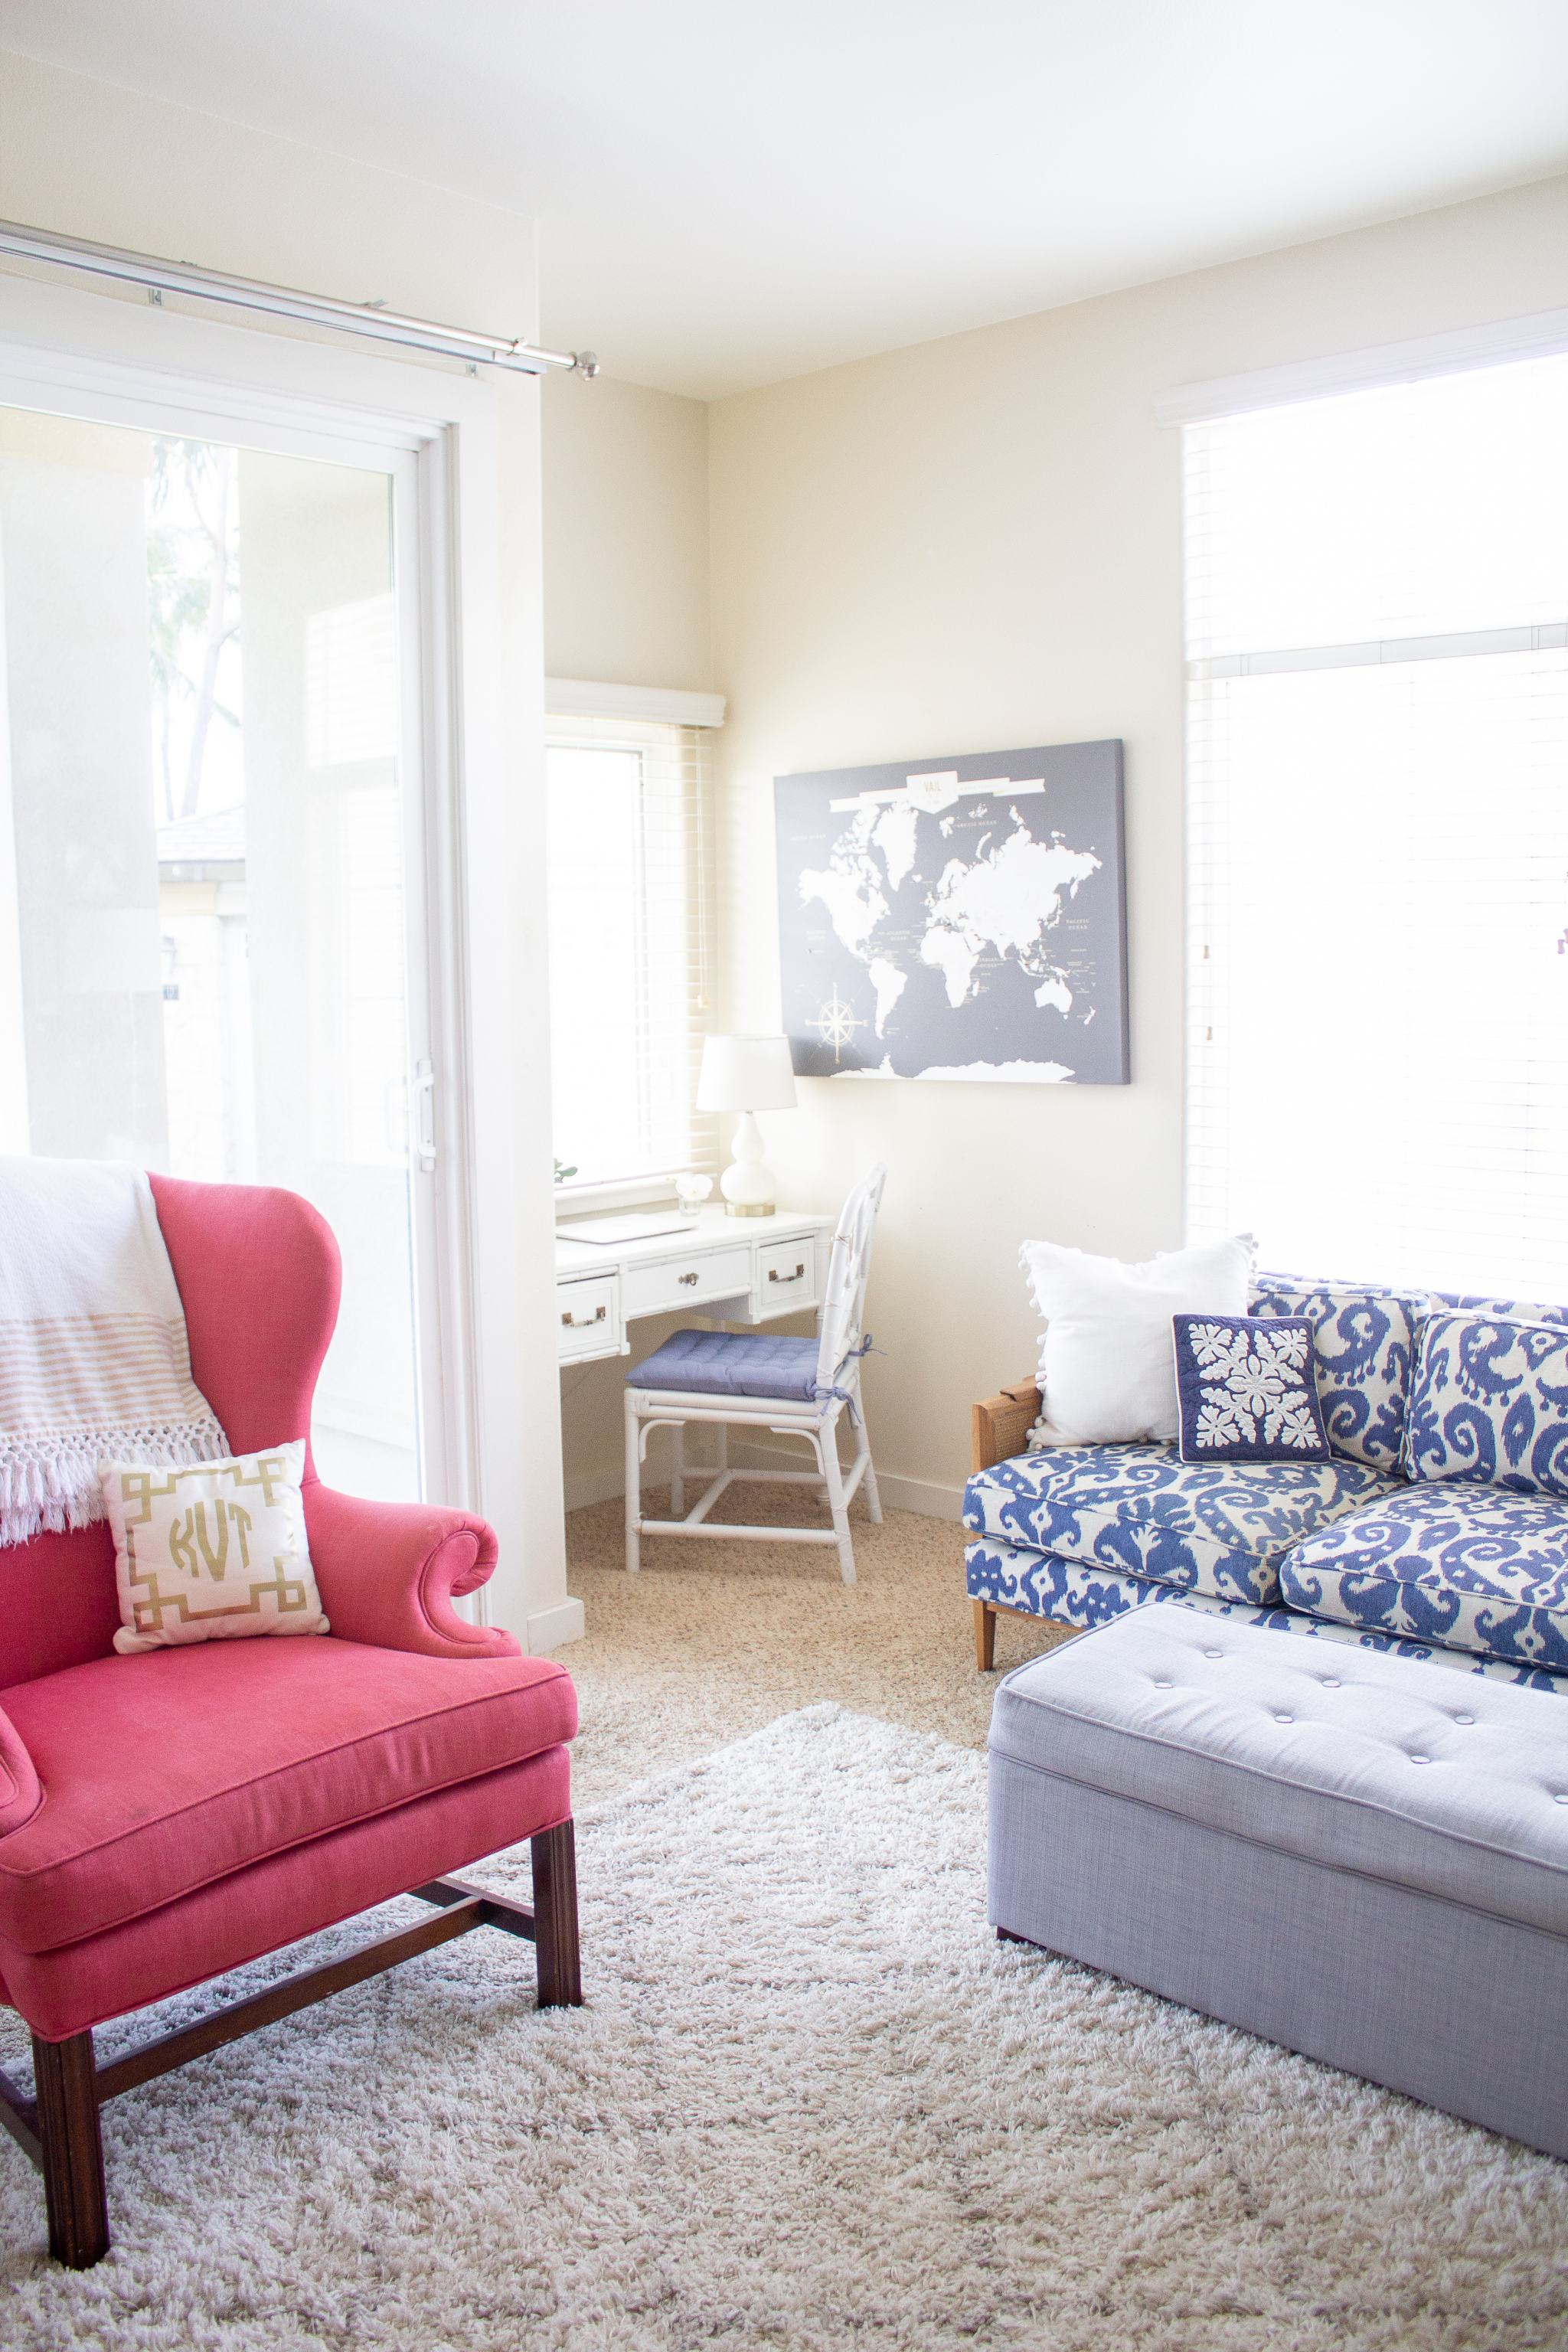 faux bamboo desk - Lacefield's Marrakesh Indigo Batik- faux bamboo vanity - chinese chippendale chair - chinese chippendale dining chair - writing nook - blue seat cushion - push pin travel map - blue and white sofa - vintage sofa - ikat sofa - home office - pink wingback chair